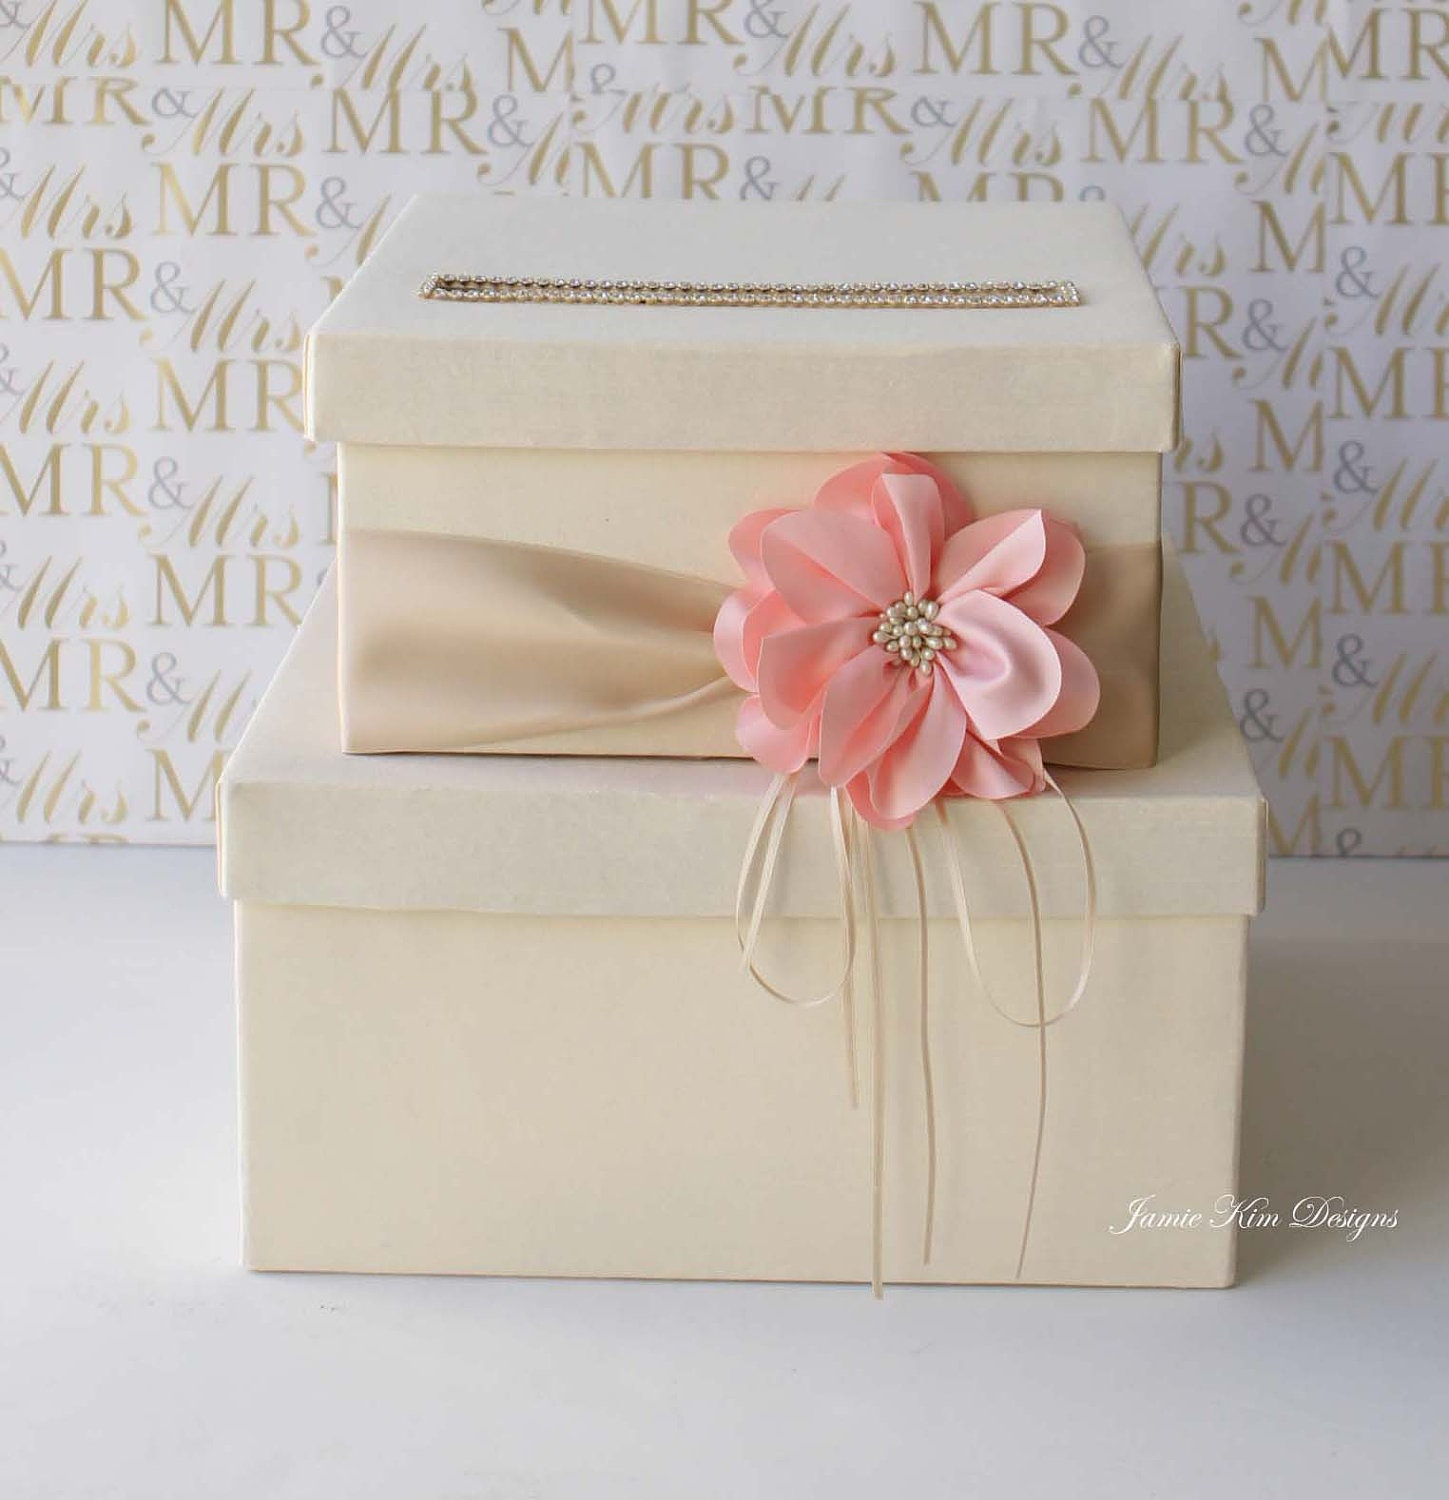 Wedding Gift Card Containers : Wedding Card Box Wedding Money Box Gift Card Box Custom Made